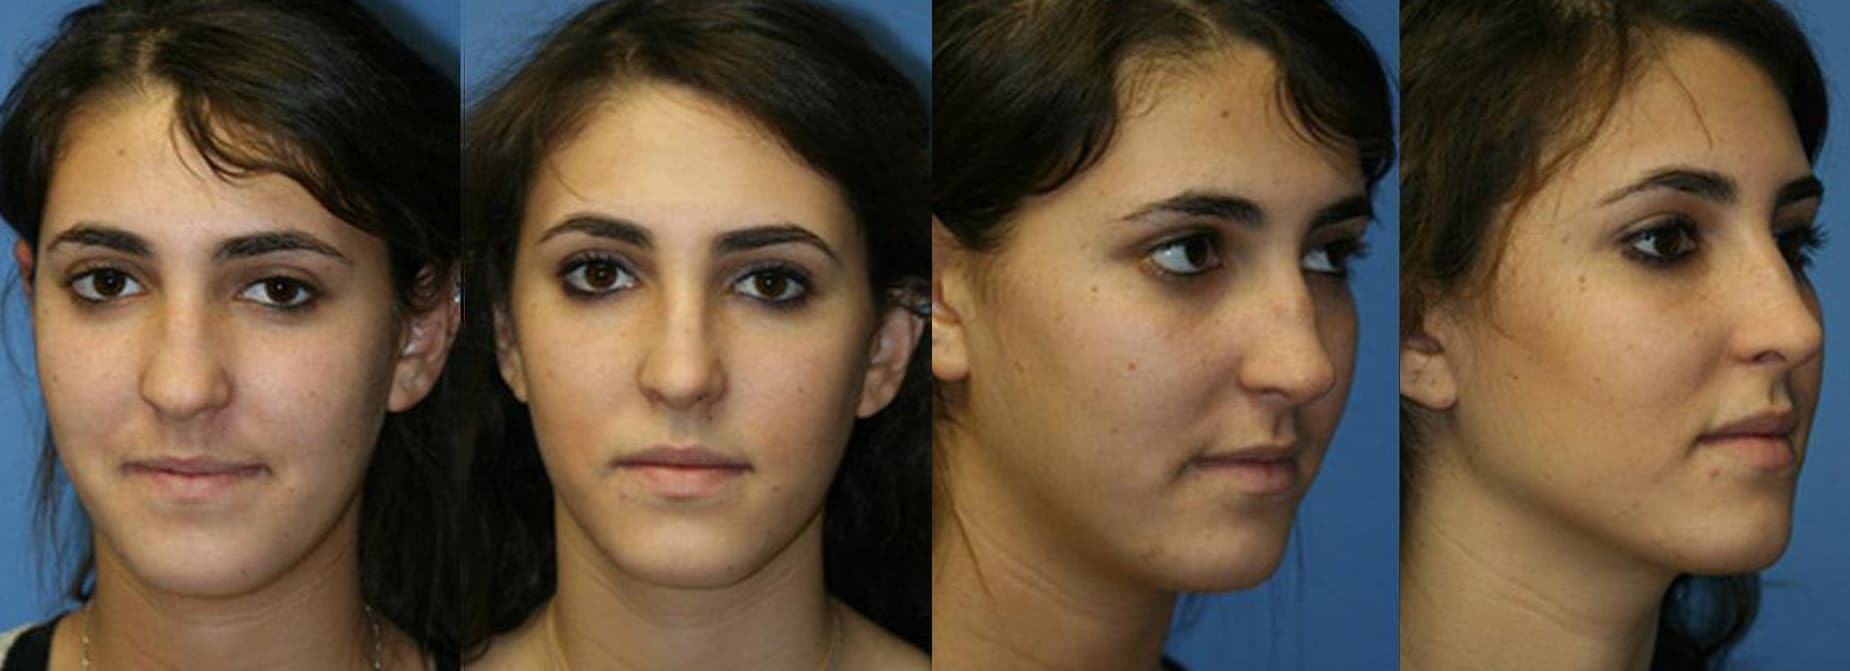 Before and after images of a young female after rhinoplasty, her nose looks slim and straight improving her overall appereance, New York, NY